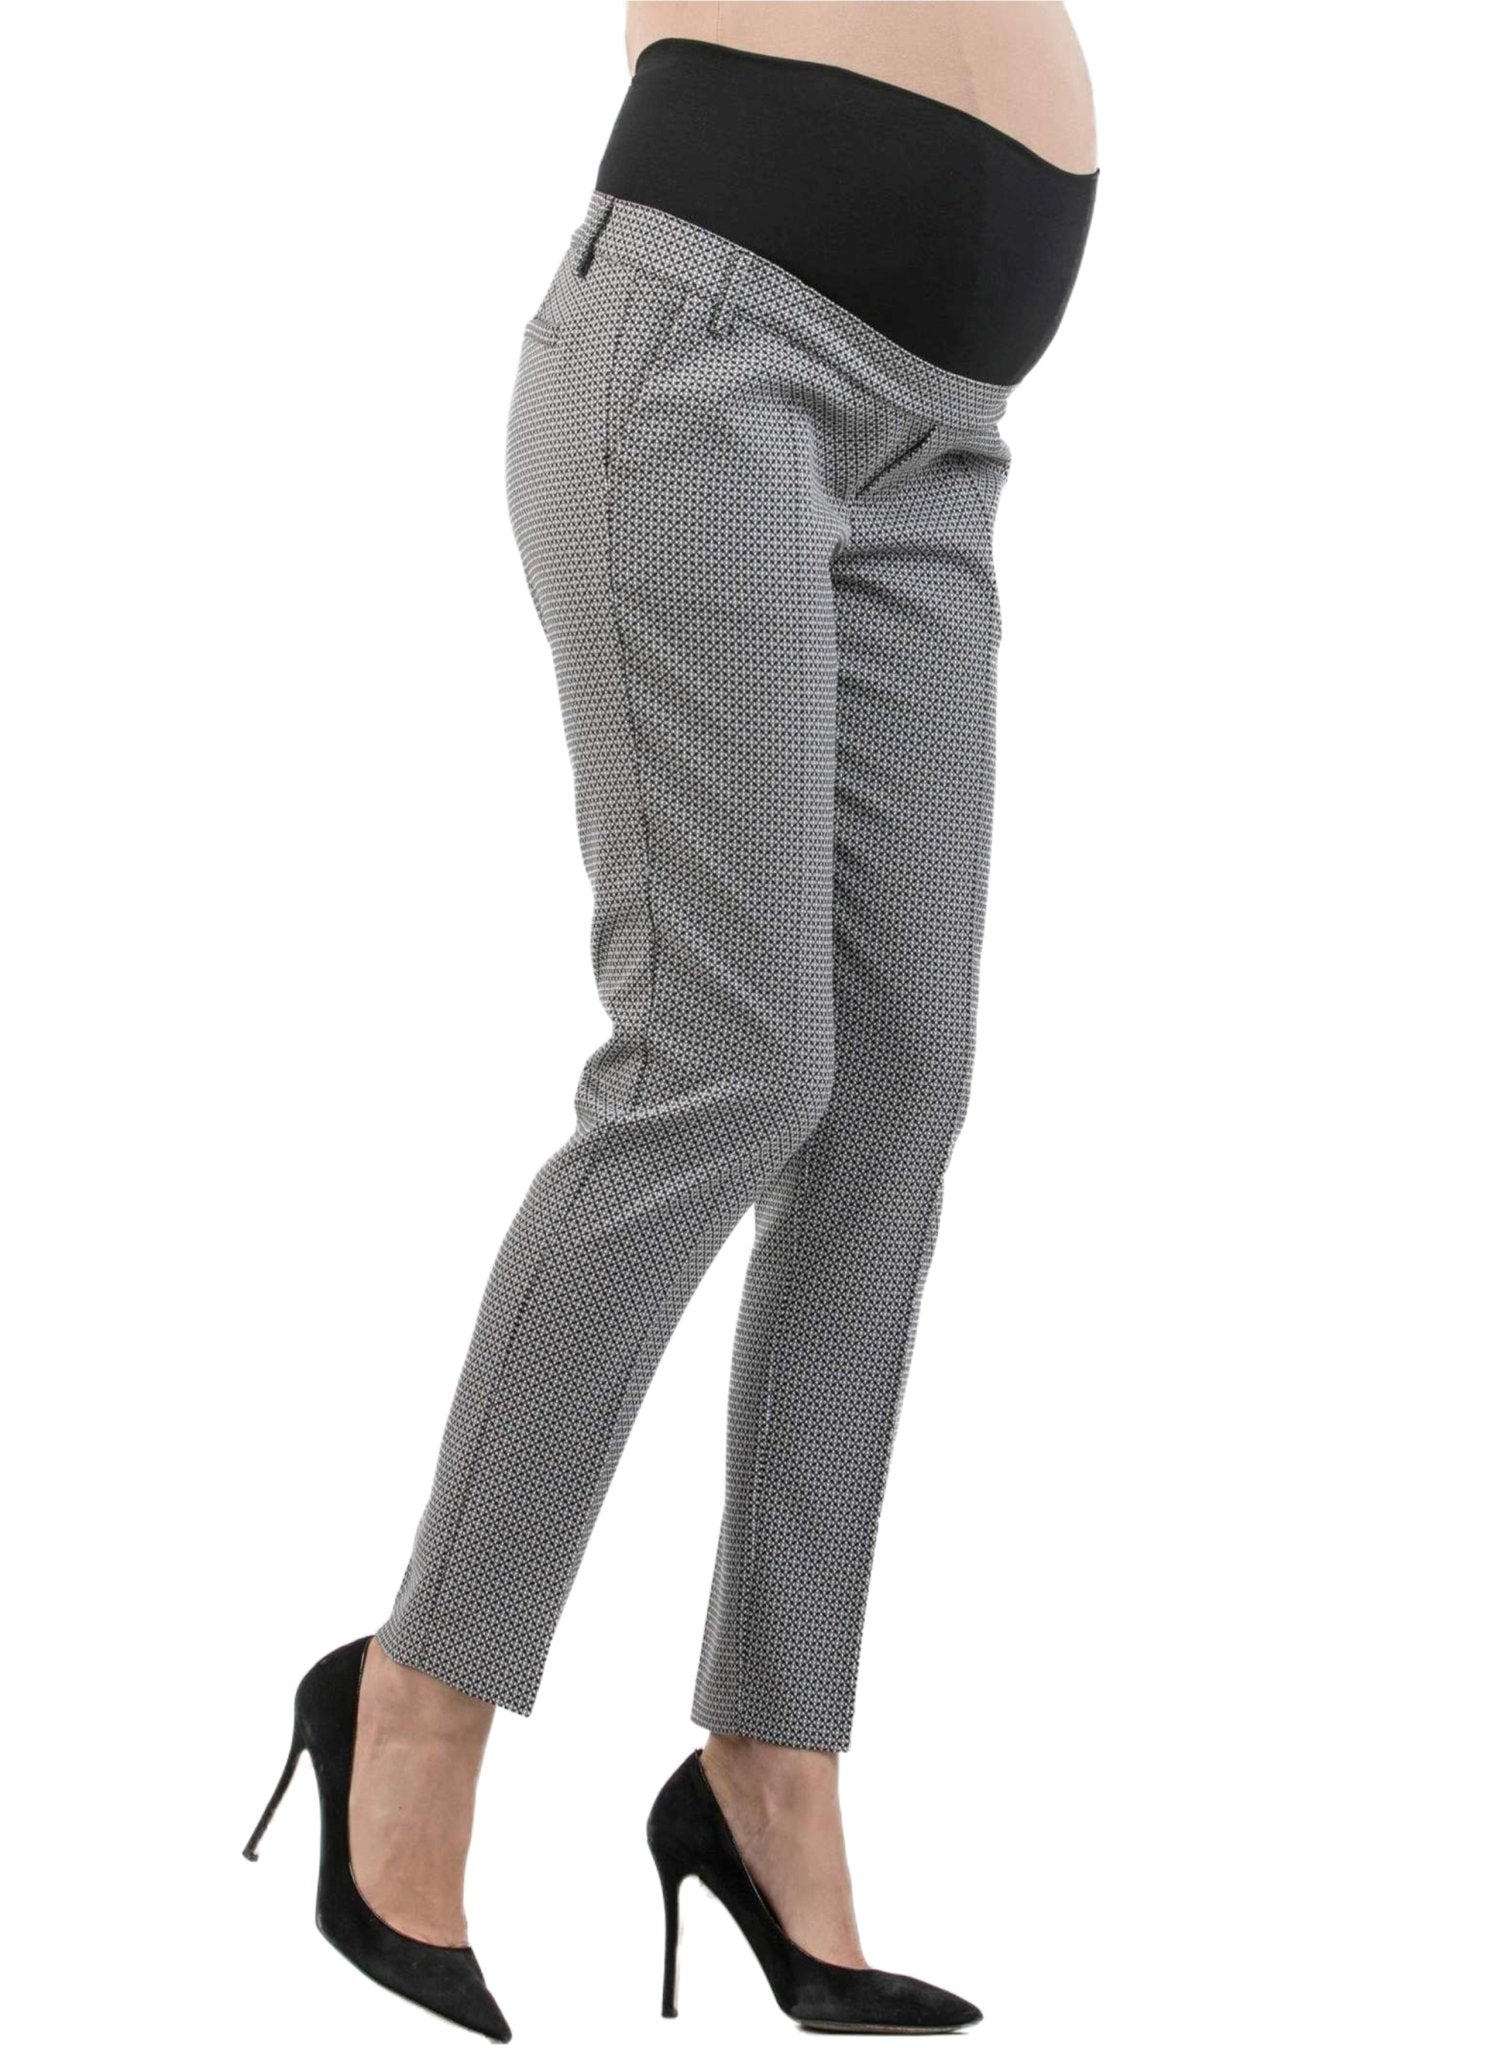 Jacquard Tailored Maternity Trousers - Mums and Bumps